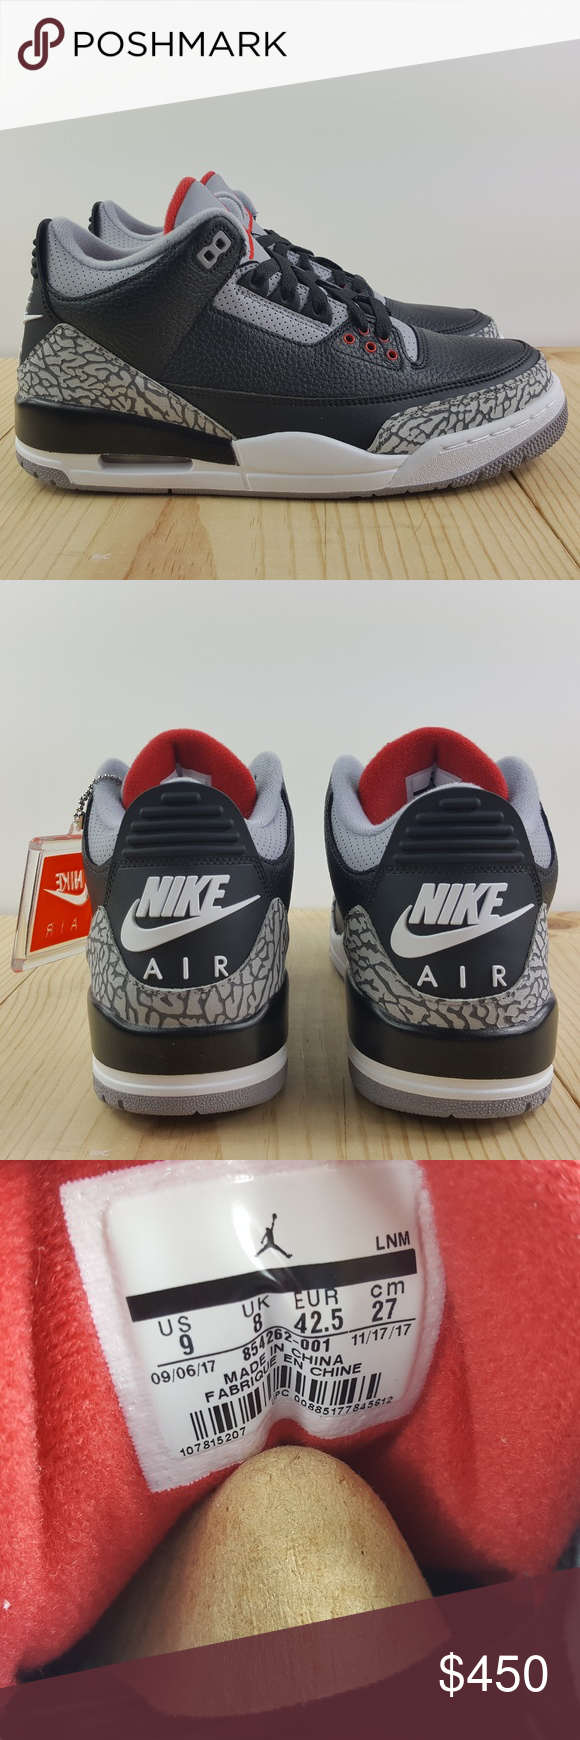 a305225968ef Air Jordan Retro 3 OG Size 9 Black Cement 2018 Brand New with Box NEVER  WORN! 100% Authentic US SIZE 9 EURO SIZE 42.5 001 Nike Shoes Sneakers